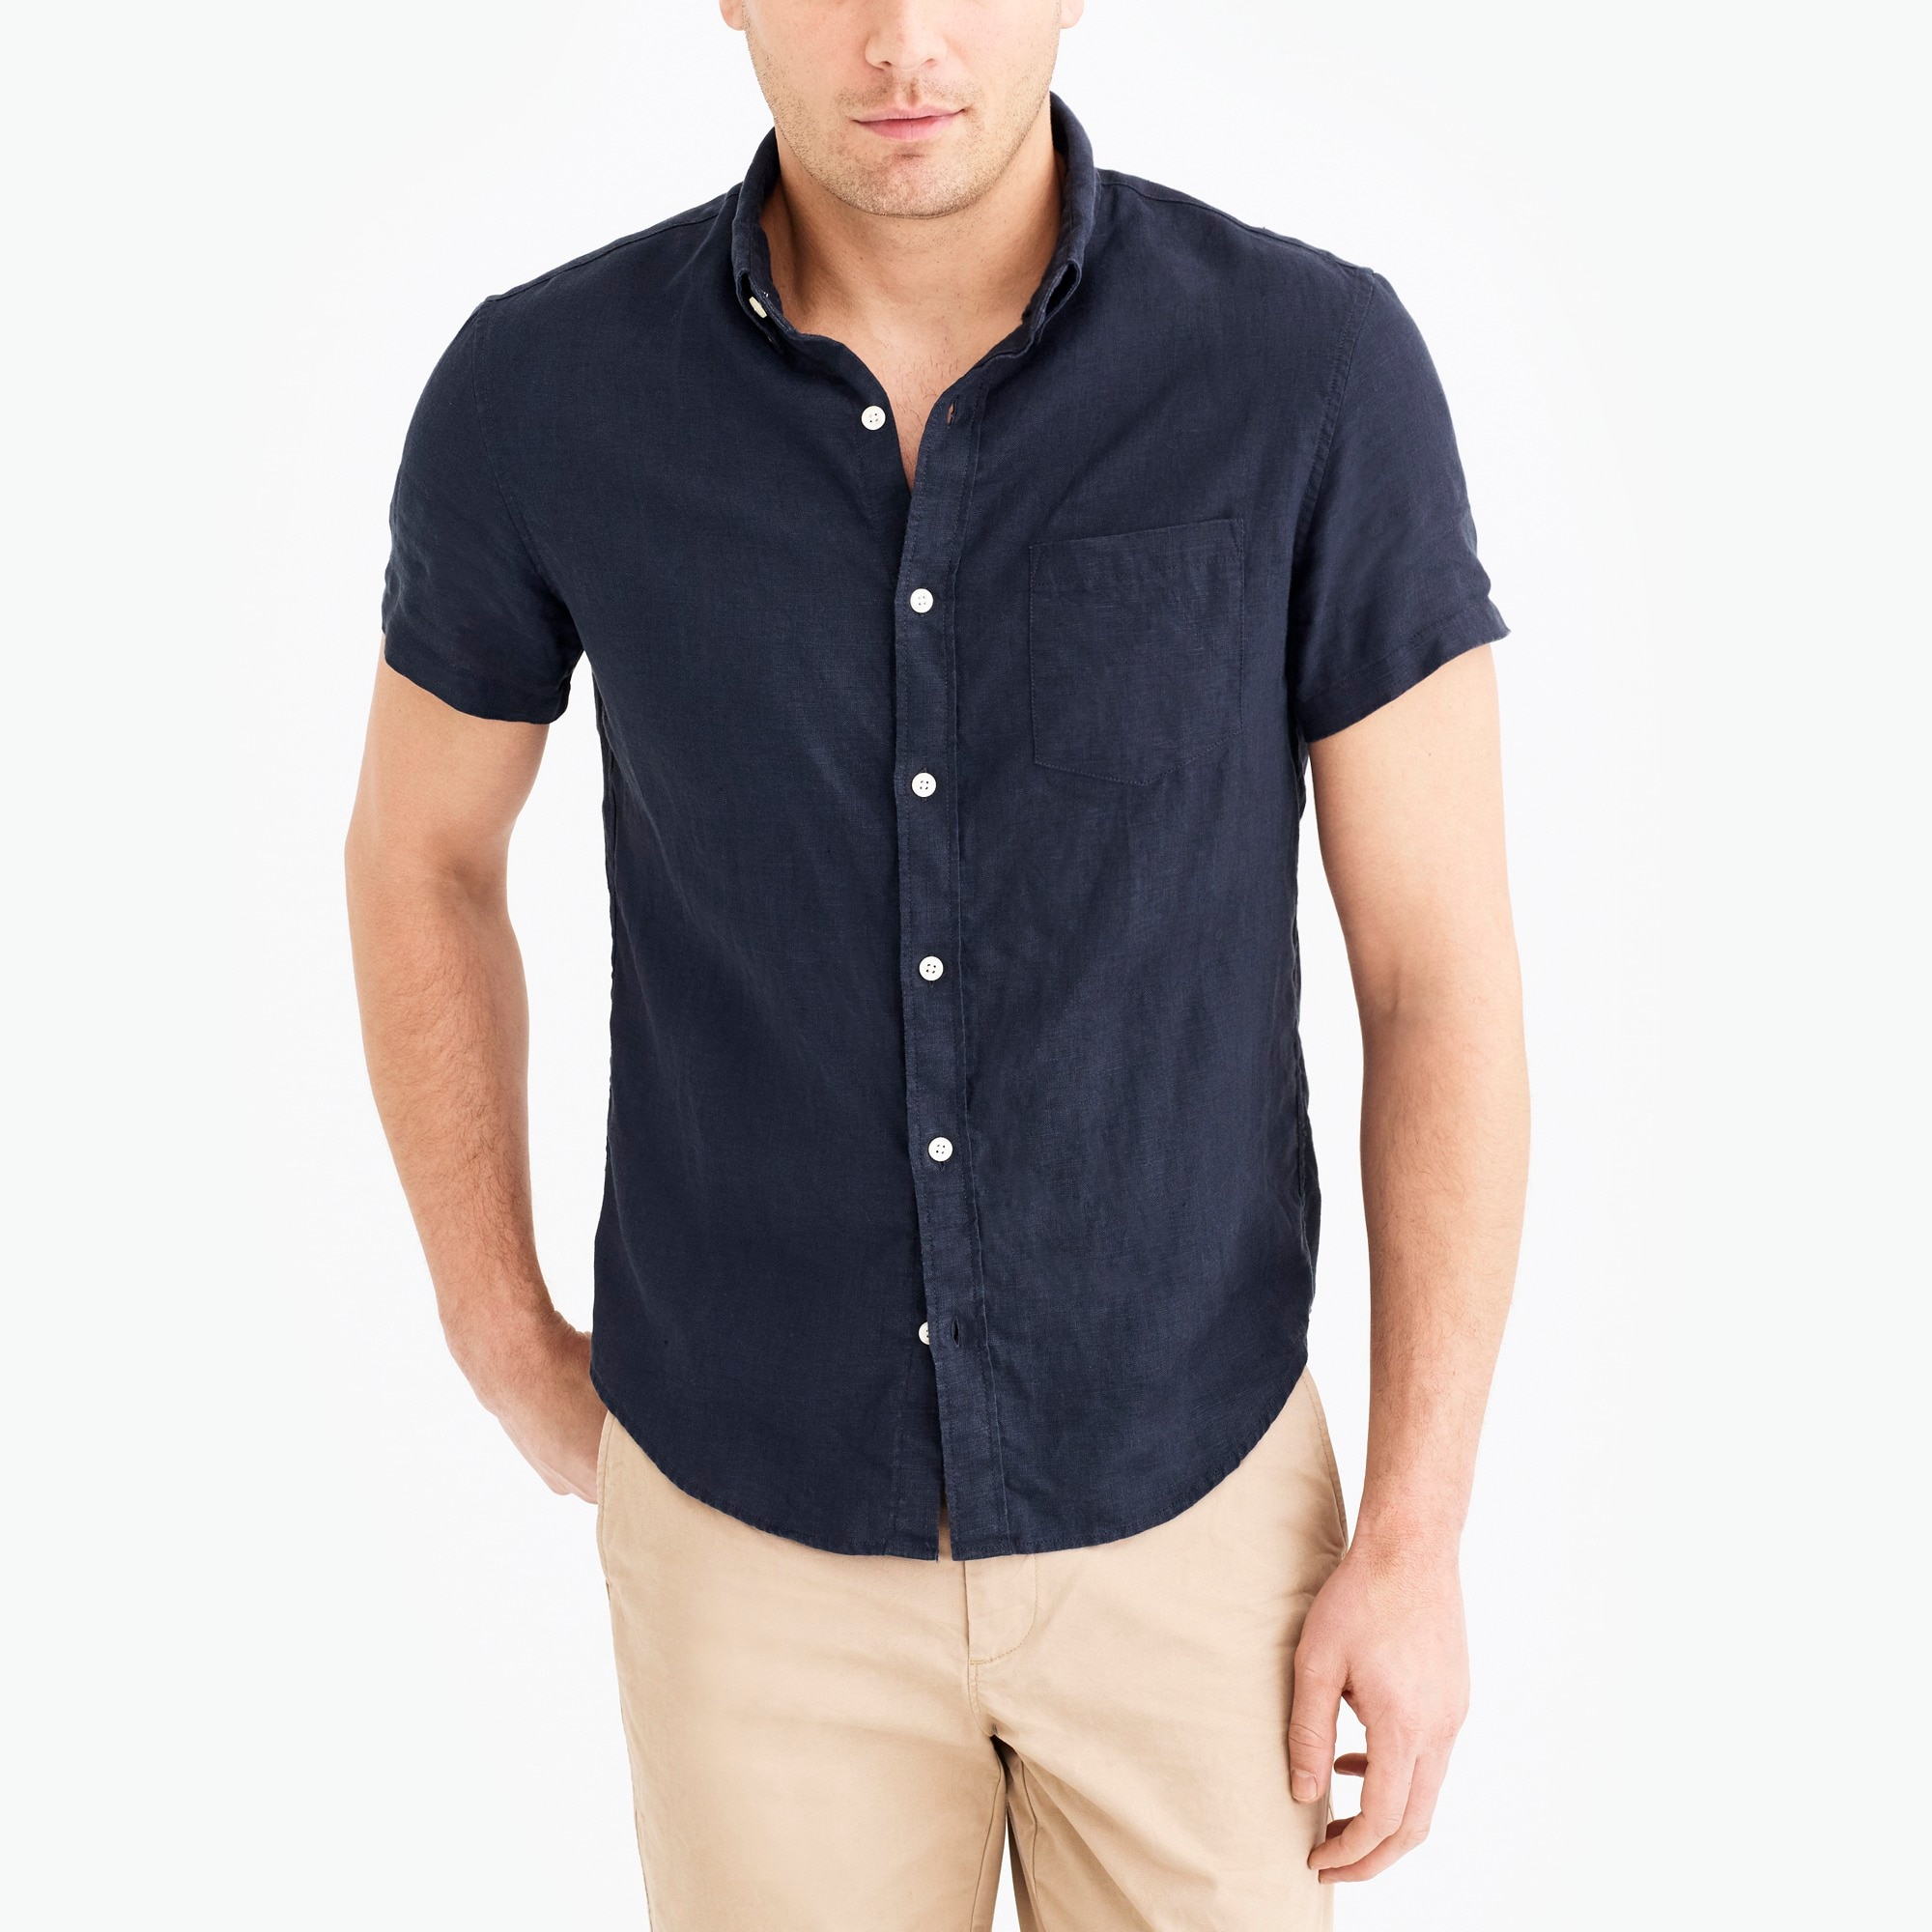 Image 1 for Short-sleeve linen shirt